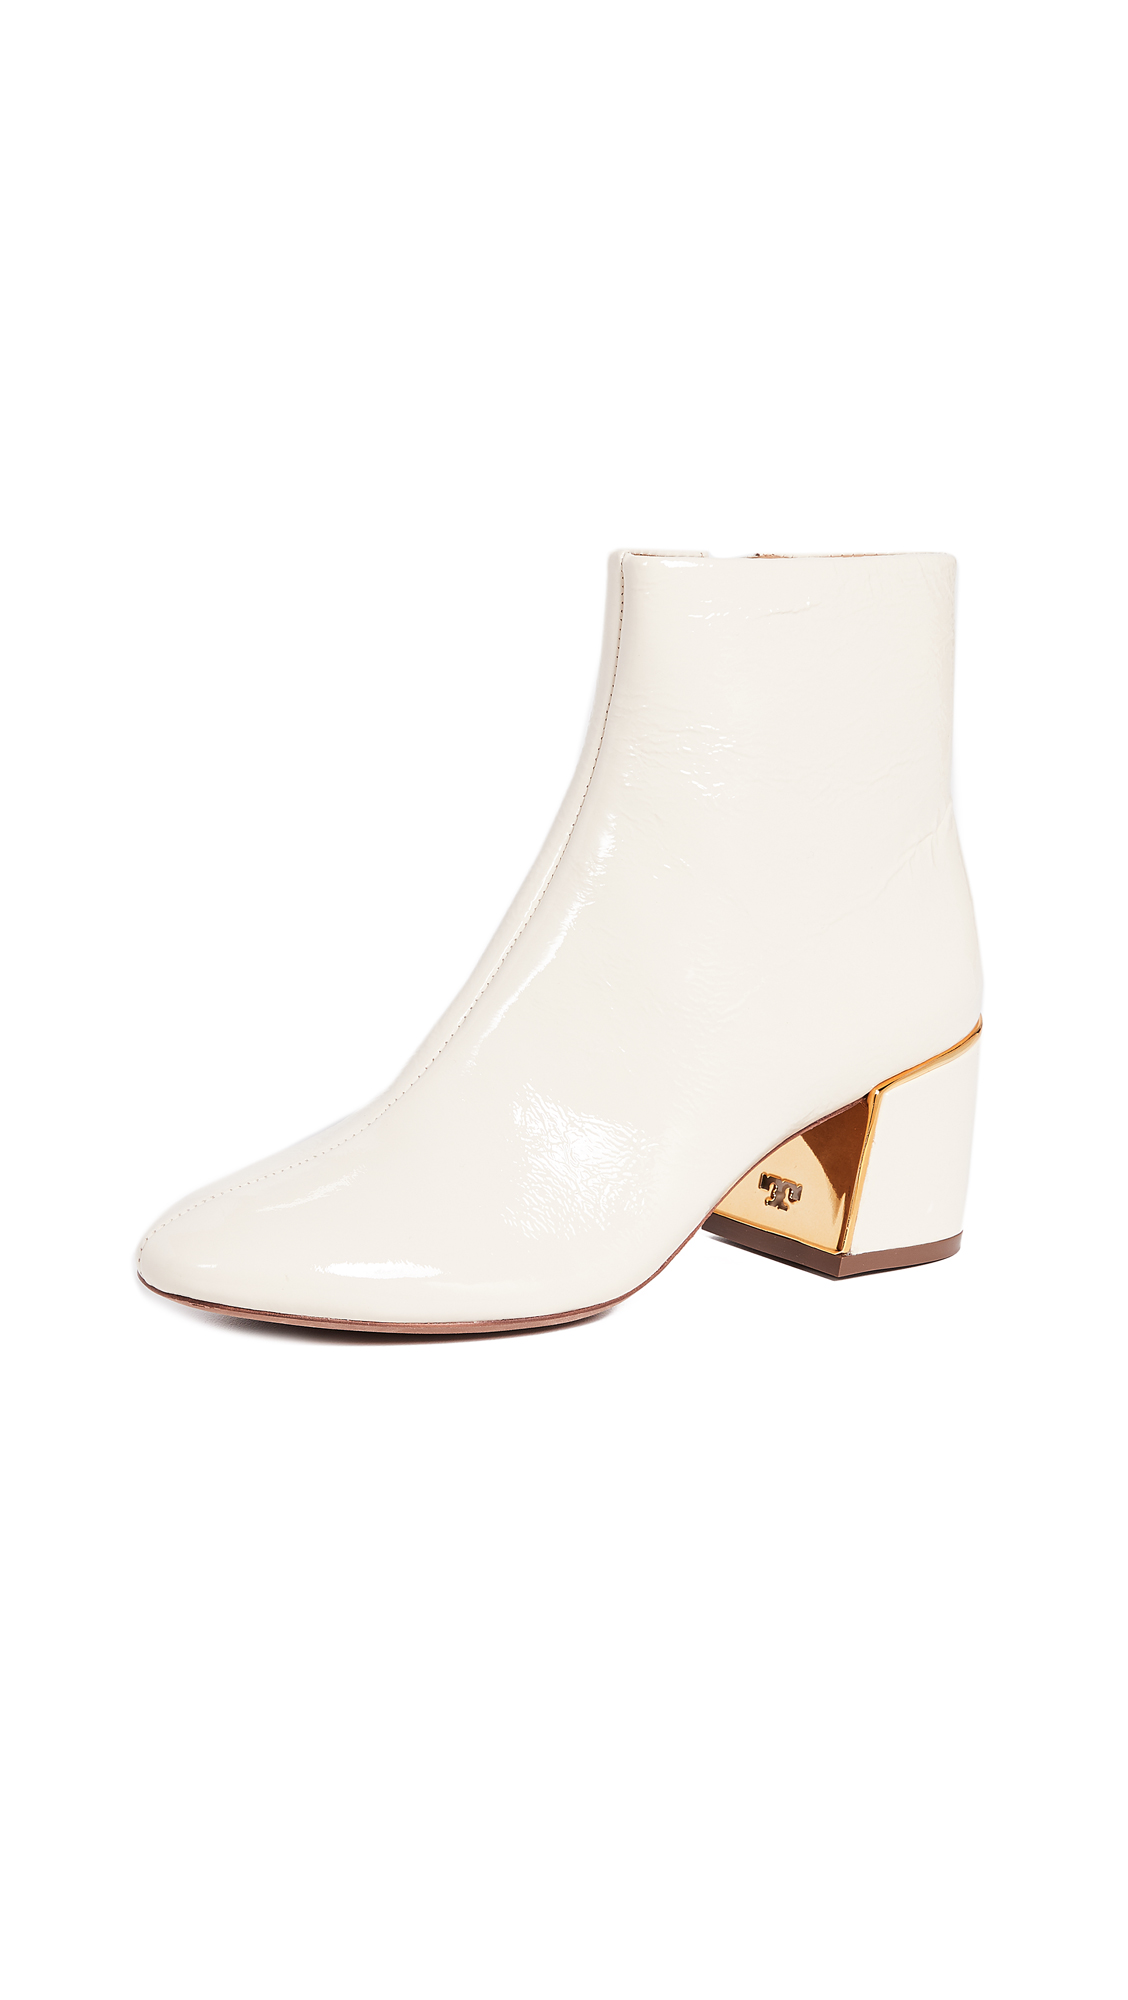 Tory Burch Juliana Booties - New Cream